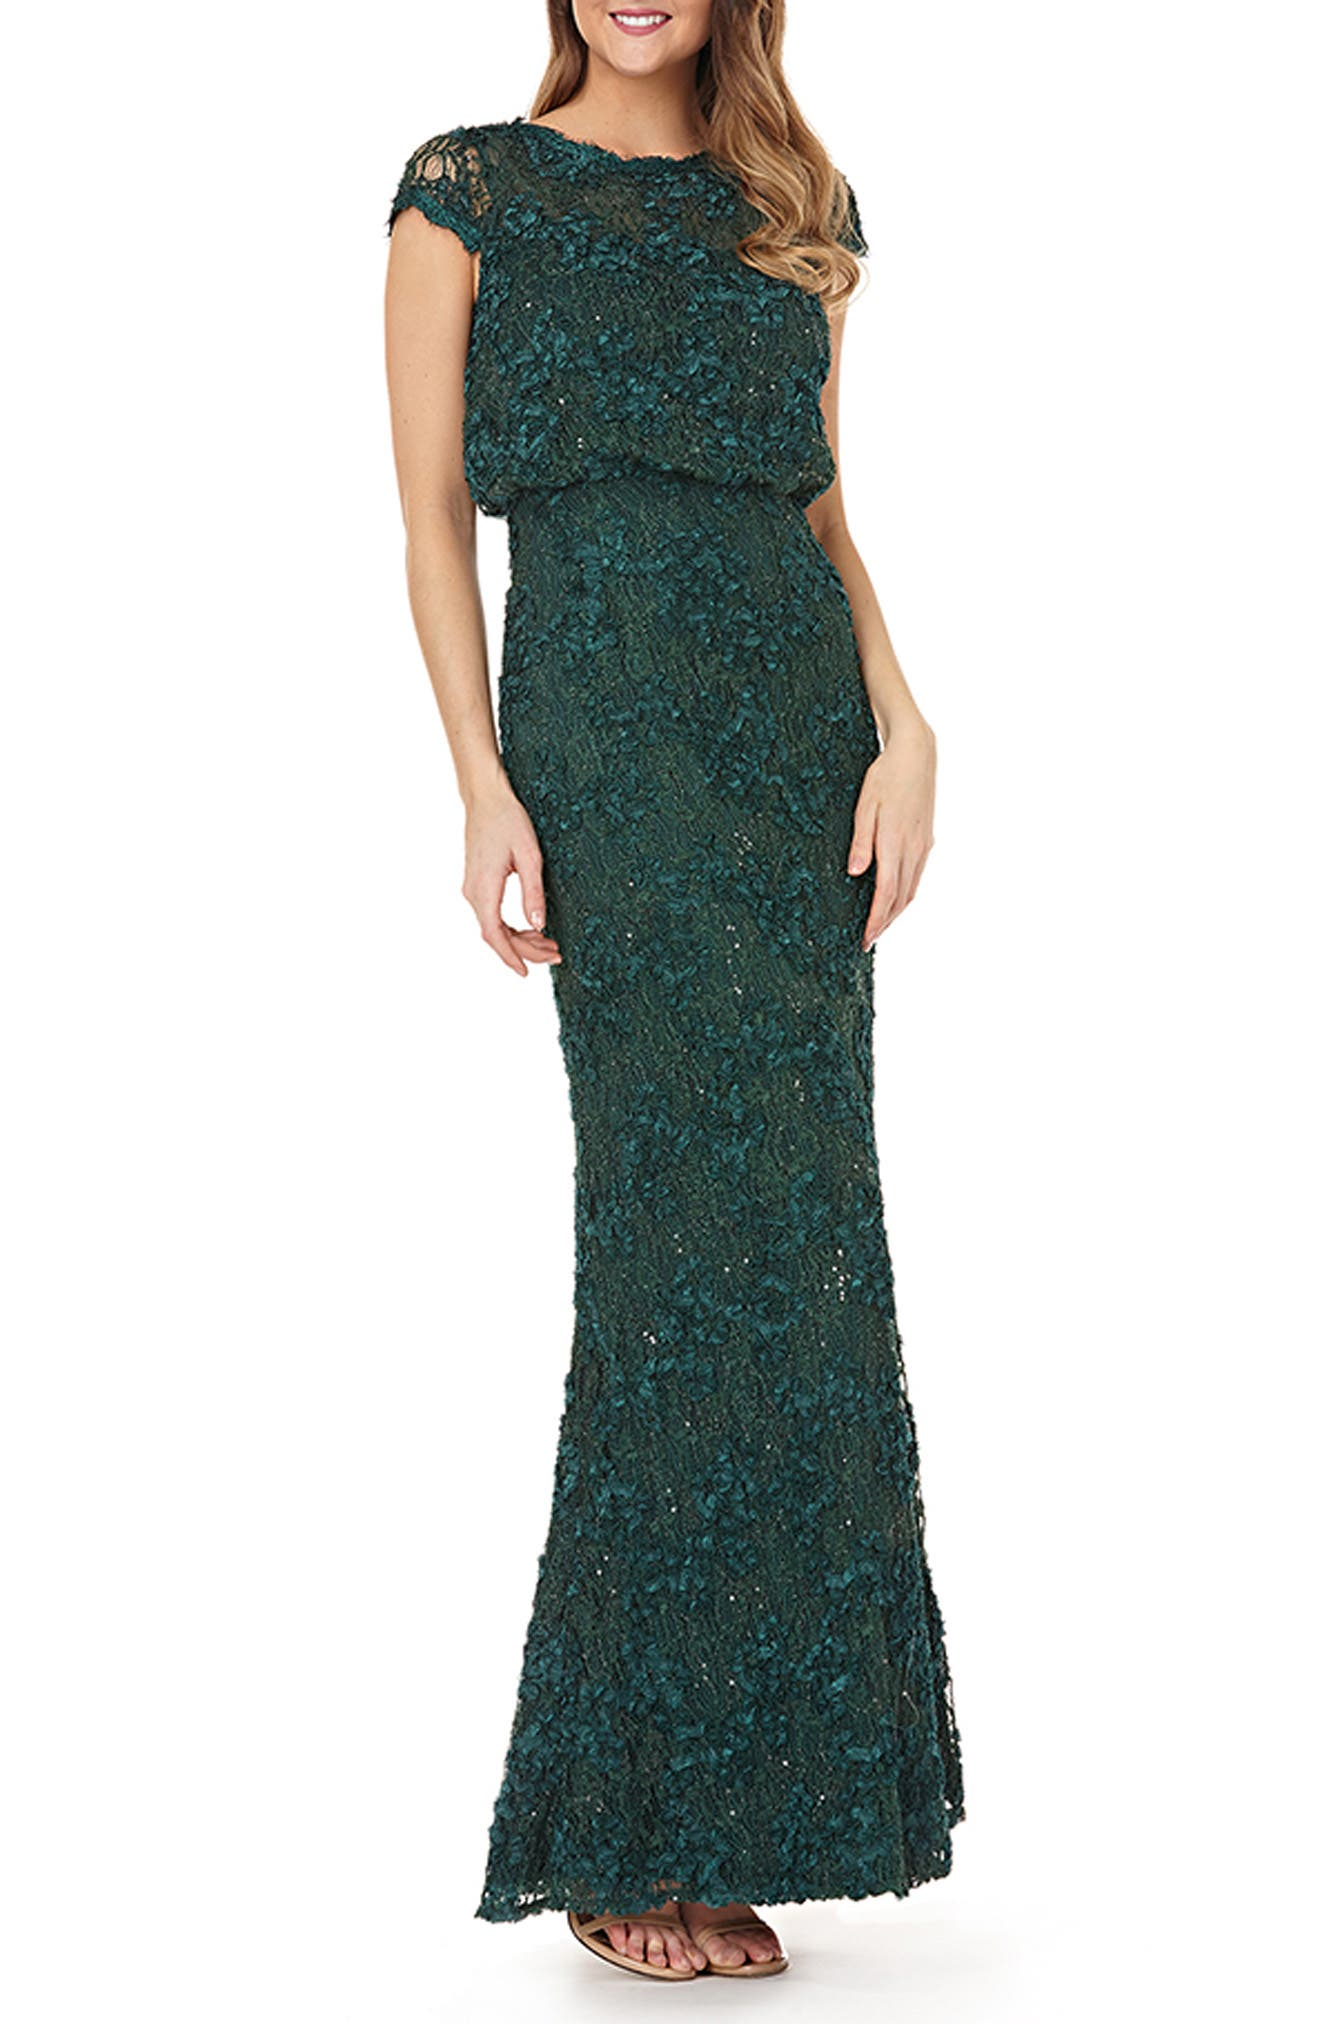 Js Collections Sequin Lace Blouson Gown, Green